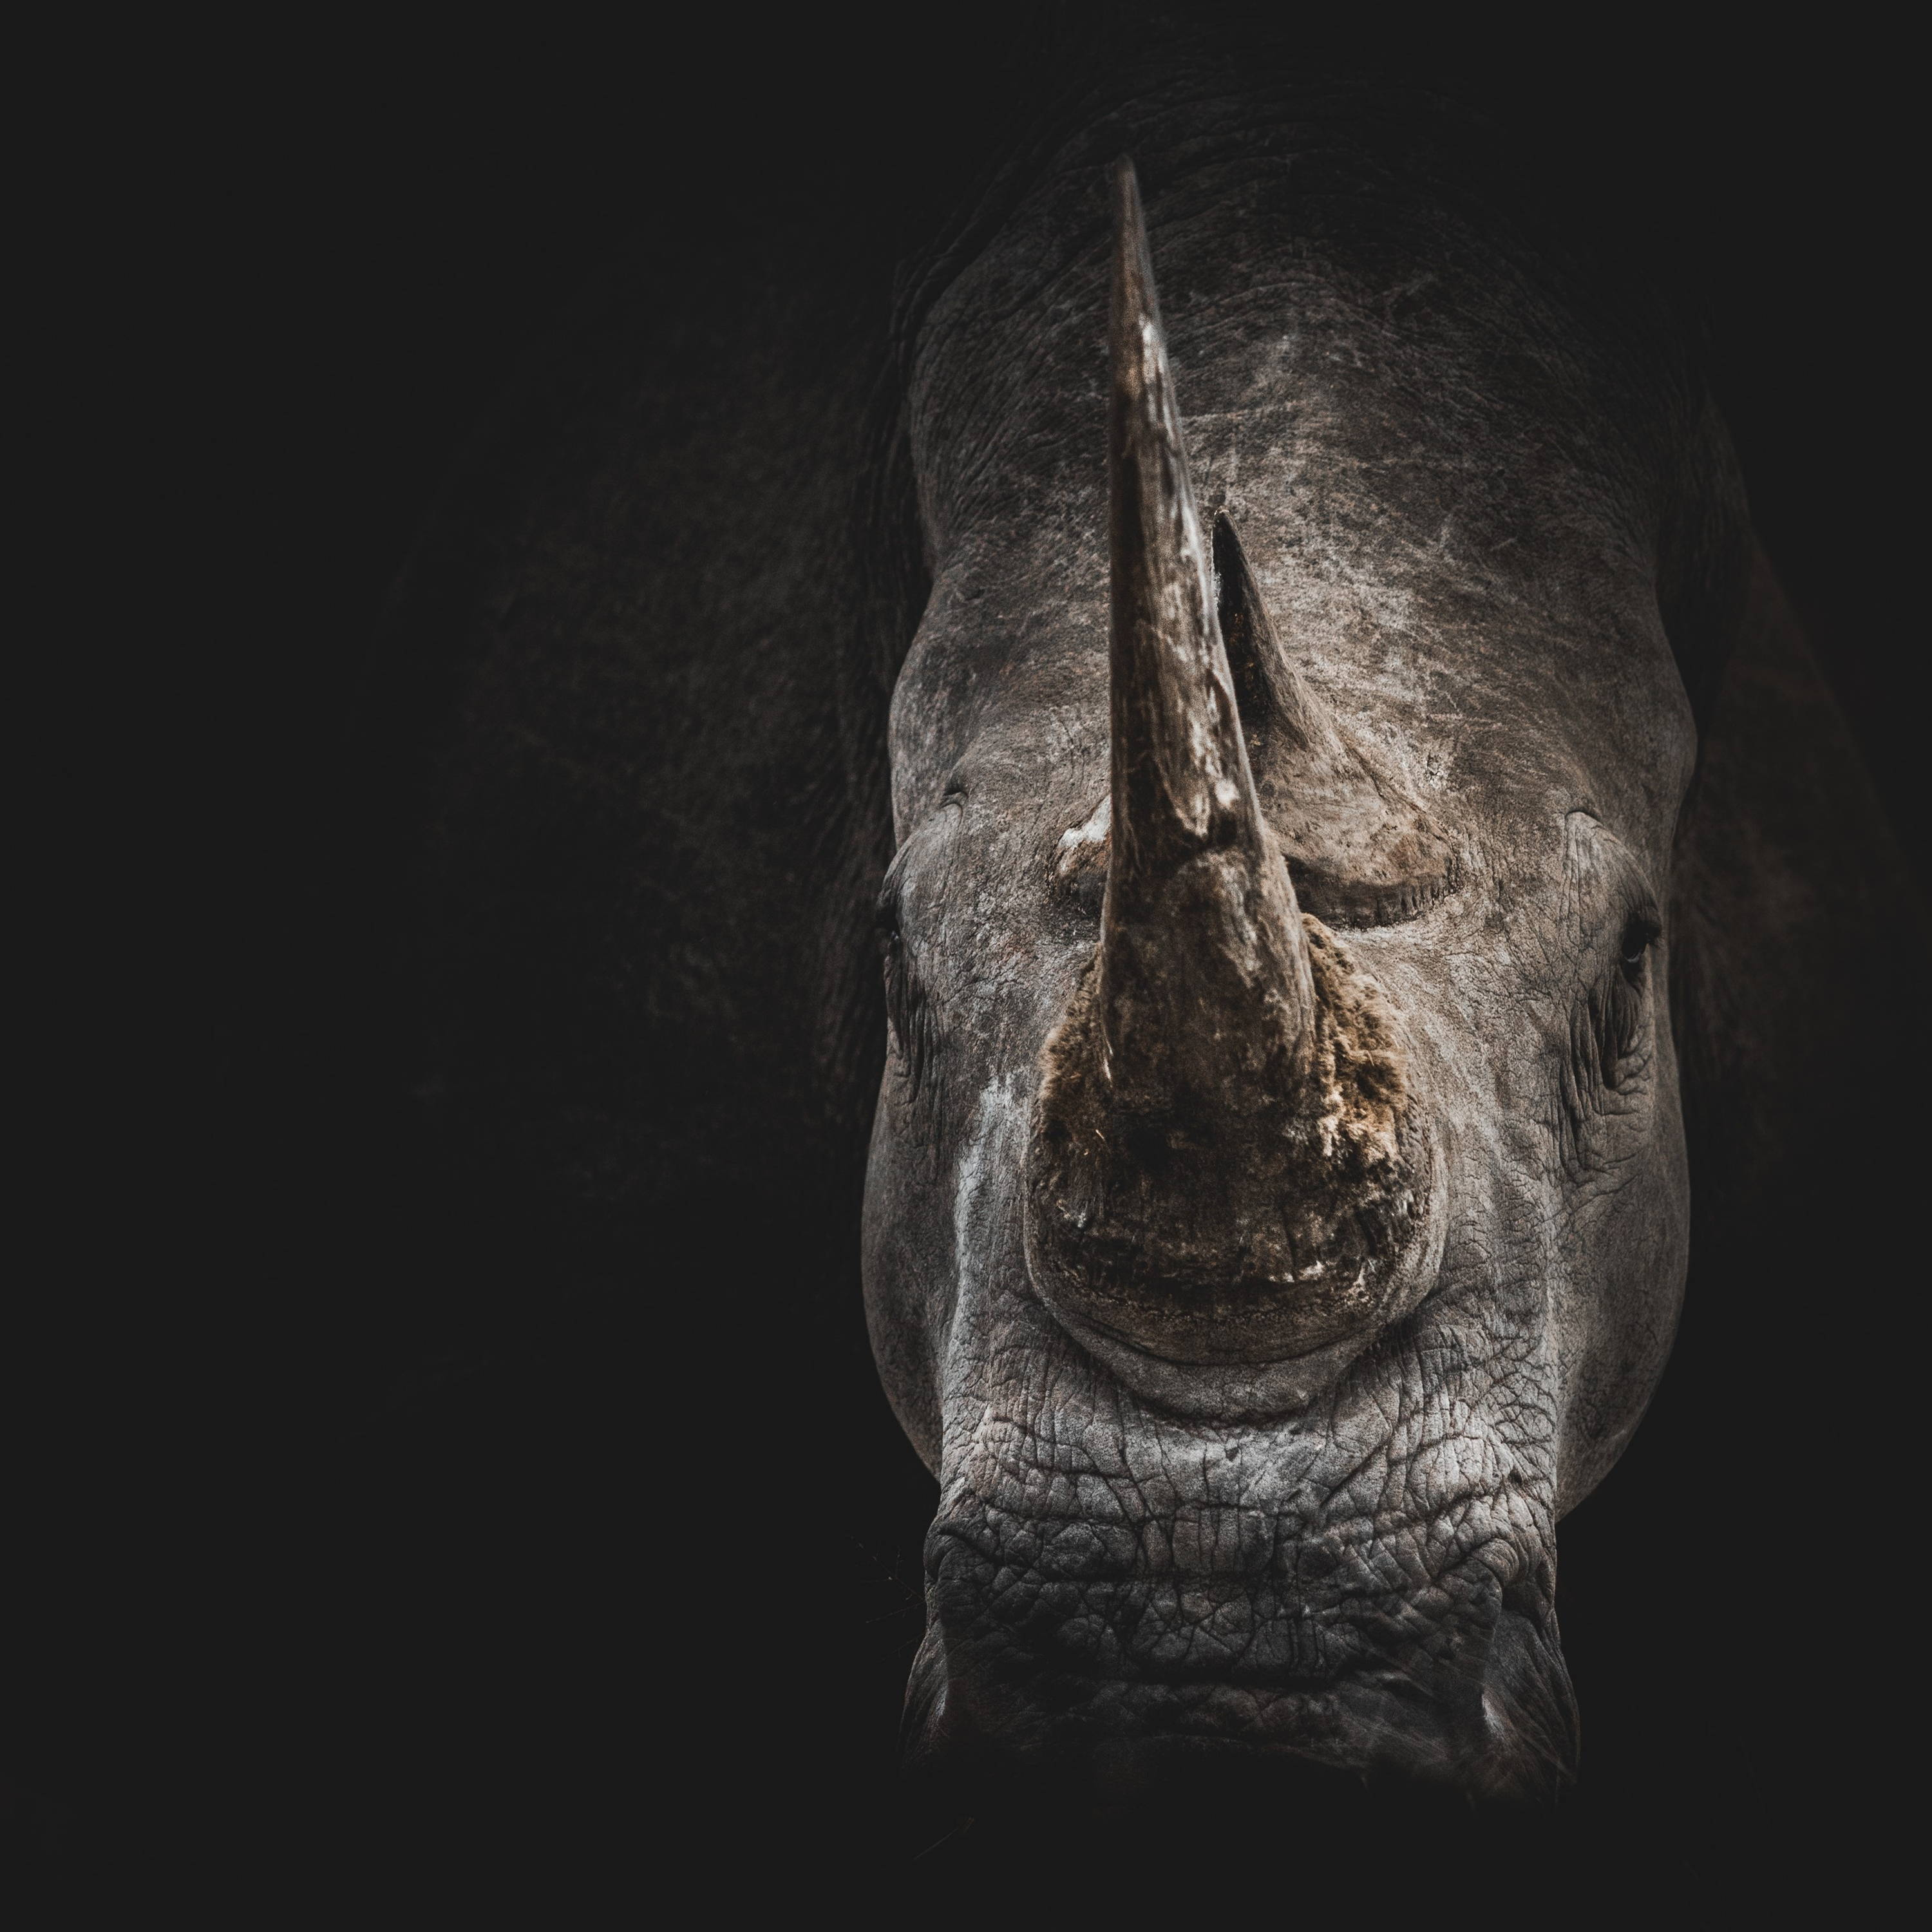 A portrait photo of a rhino with black background